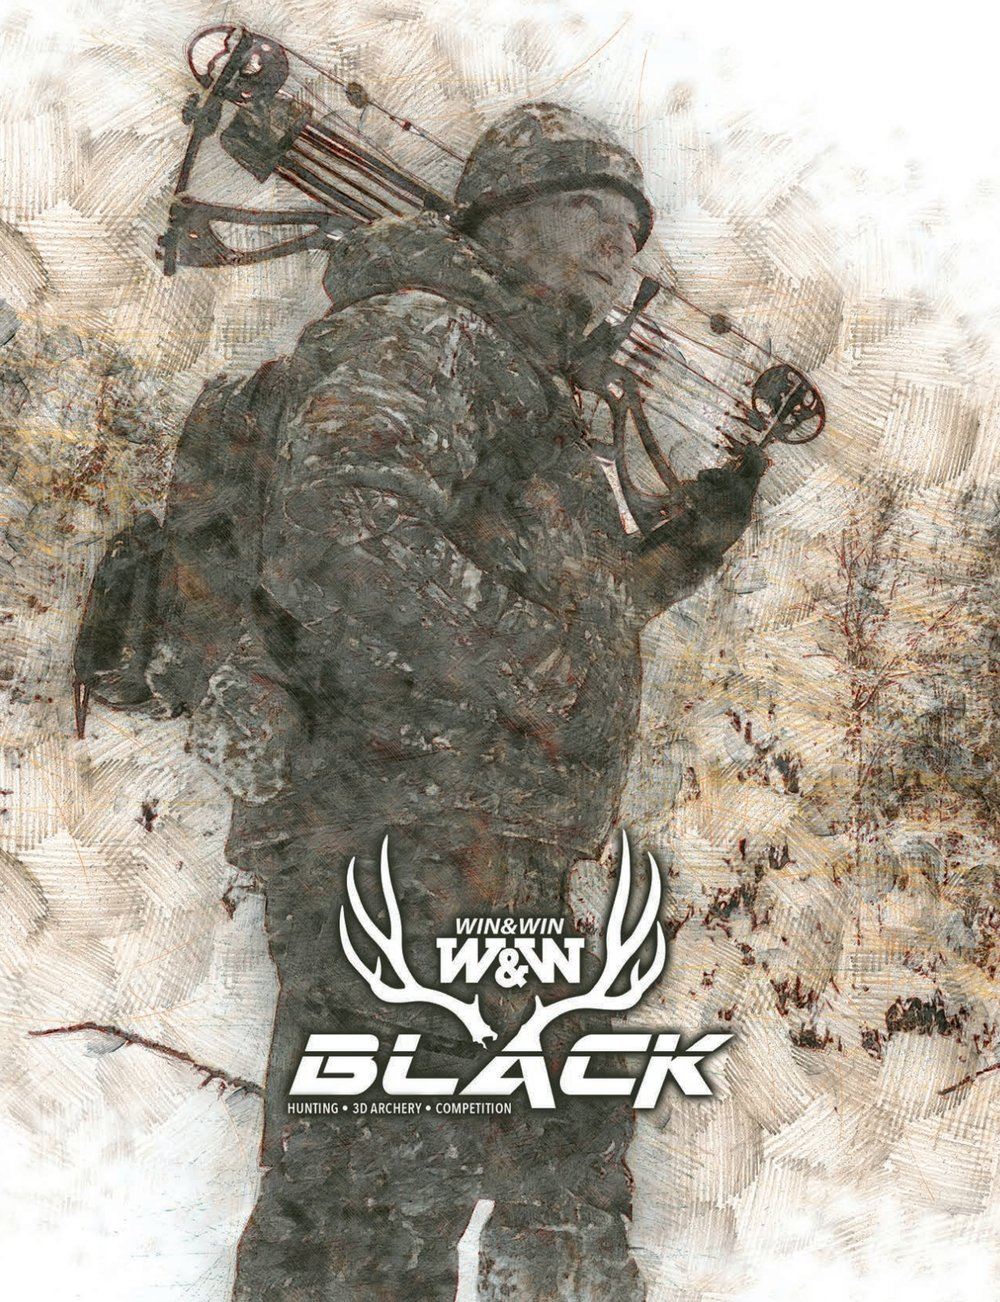 "Win & Win Black - The best technology for the most Competitive Archers and BowhuntersCARBON TECHNOLOGYCarbon ""nano-materials"", ""nanotube"", ""graphite"" and ""nanofiber"" are true 21st century materials. They can be made as small as 1/10,000th ofa human hair, and have superior mechanical, chemical, physical and magnetic properties. High-tech engineering creates the best carbonmaterial mixture for Win&Win bows, improving product quality and gaining archers' confidence. Scientists believe nano-materials are thebuilding blocks for the next generation of engineering.CARBON STABILITYCompound archers strive for higher arrow speeds, but this results in increased vibrations in the bow. Up until now, the use of aluminiumhas not been able to effectively deal with this. Win&Win specifically designed its range of premium carbon compound bows to addressthis issue."